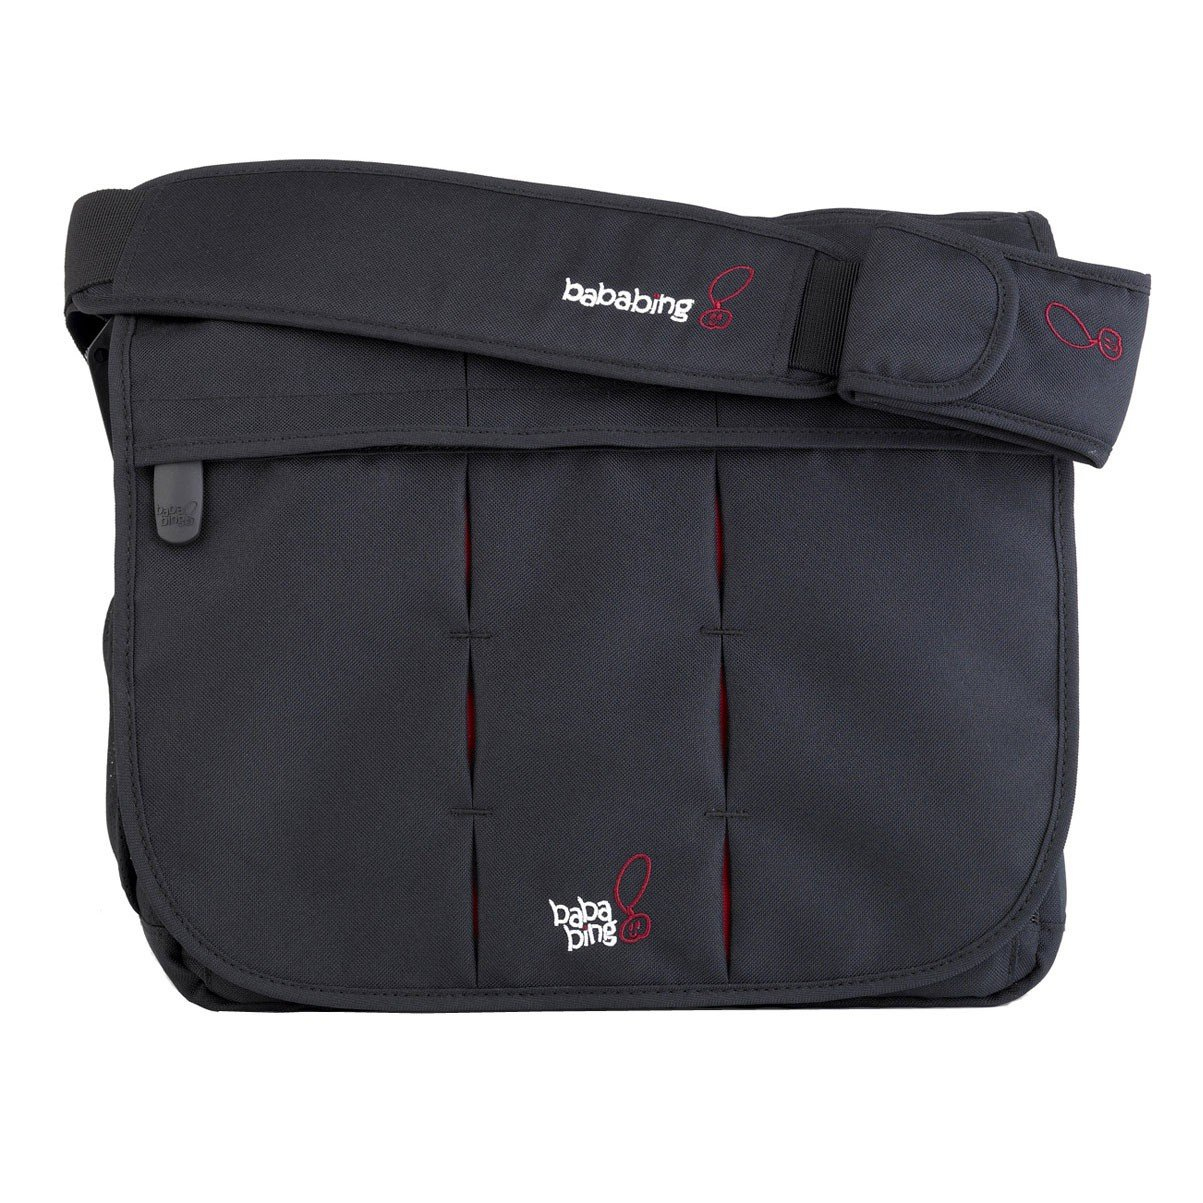 BabaBing BB23-001 Daytripper Deluxe Changing Bag (Black) BabaBing!